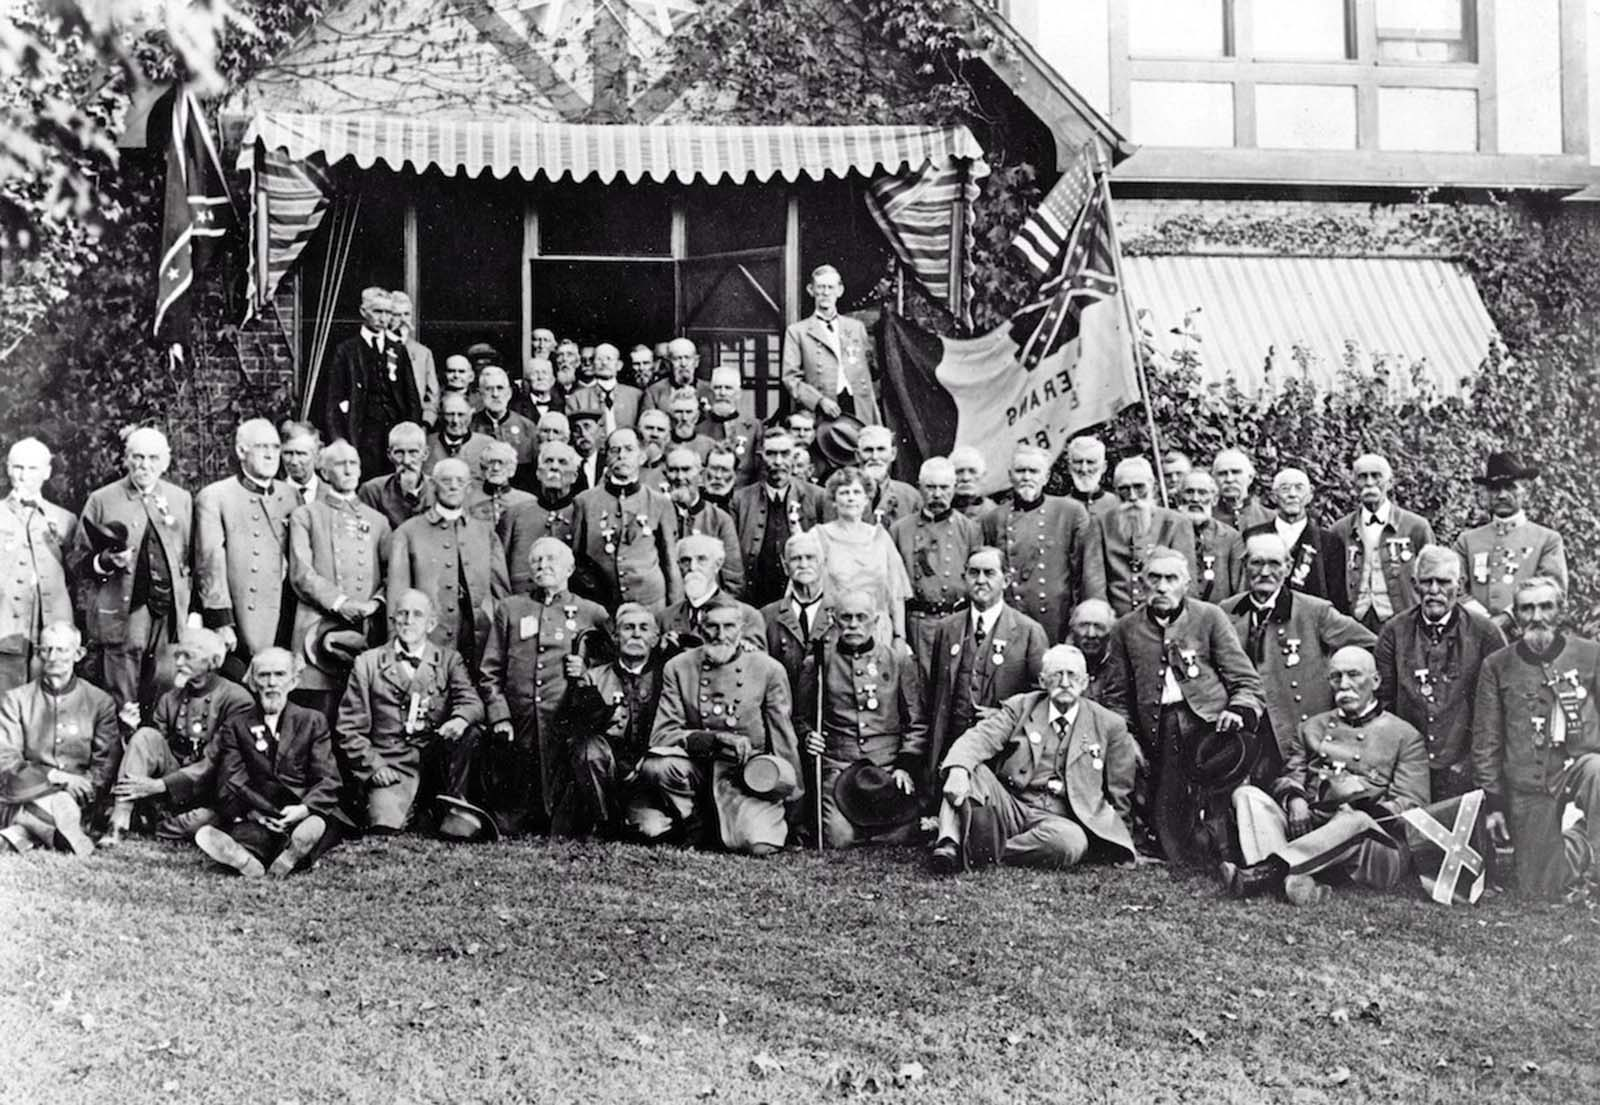 Chattanooga, Tennessee — A group of Confederate cavalry veterans gather at a reunion. 1921.